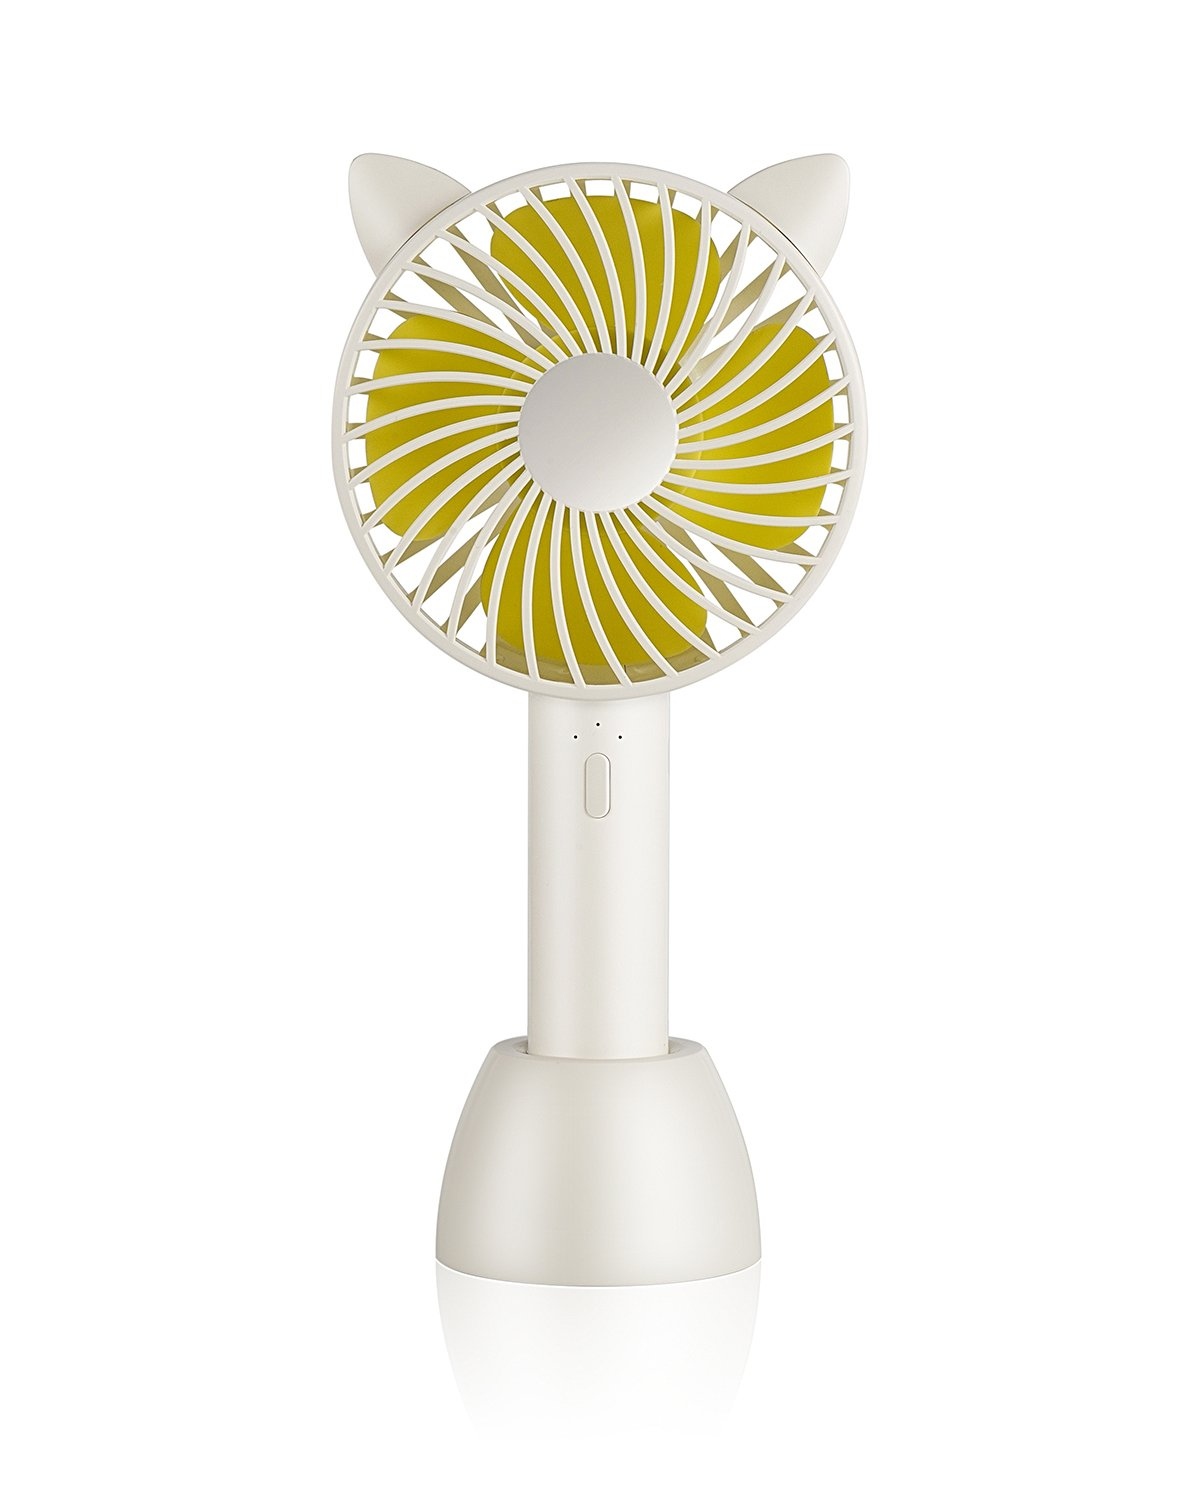 SUPOLOGY Handheld Fan Mini Personal Portable Rechargeable Fan 2 in 1 Table Desktop Fan with 2000mAh Battery USB Powered 3 Speed Cooling Fan for Outdoor Home Office Travel